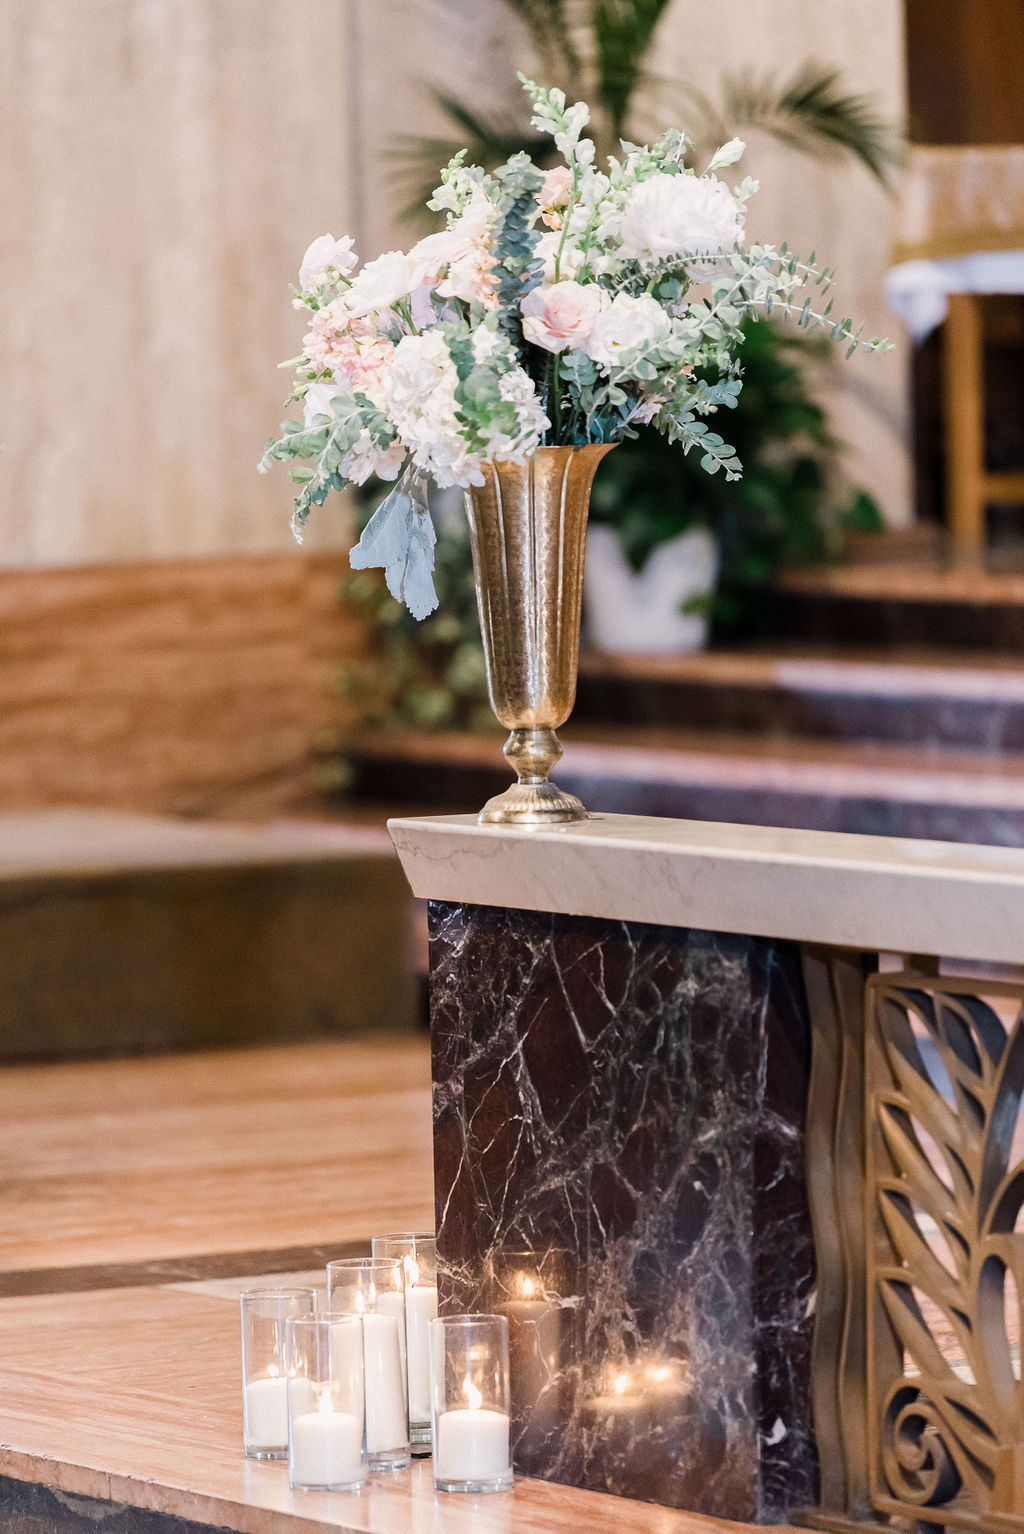 church altar with gold vase holding light colored roses for a wedding